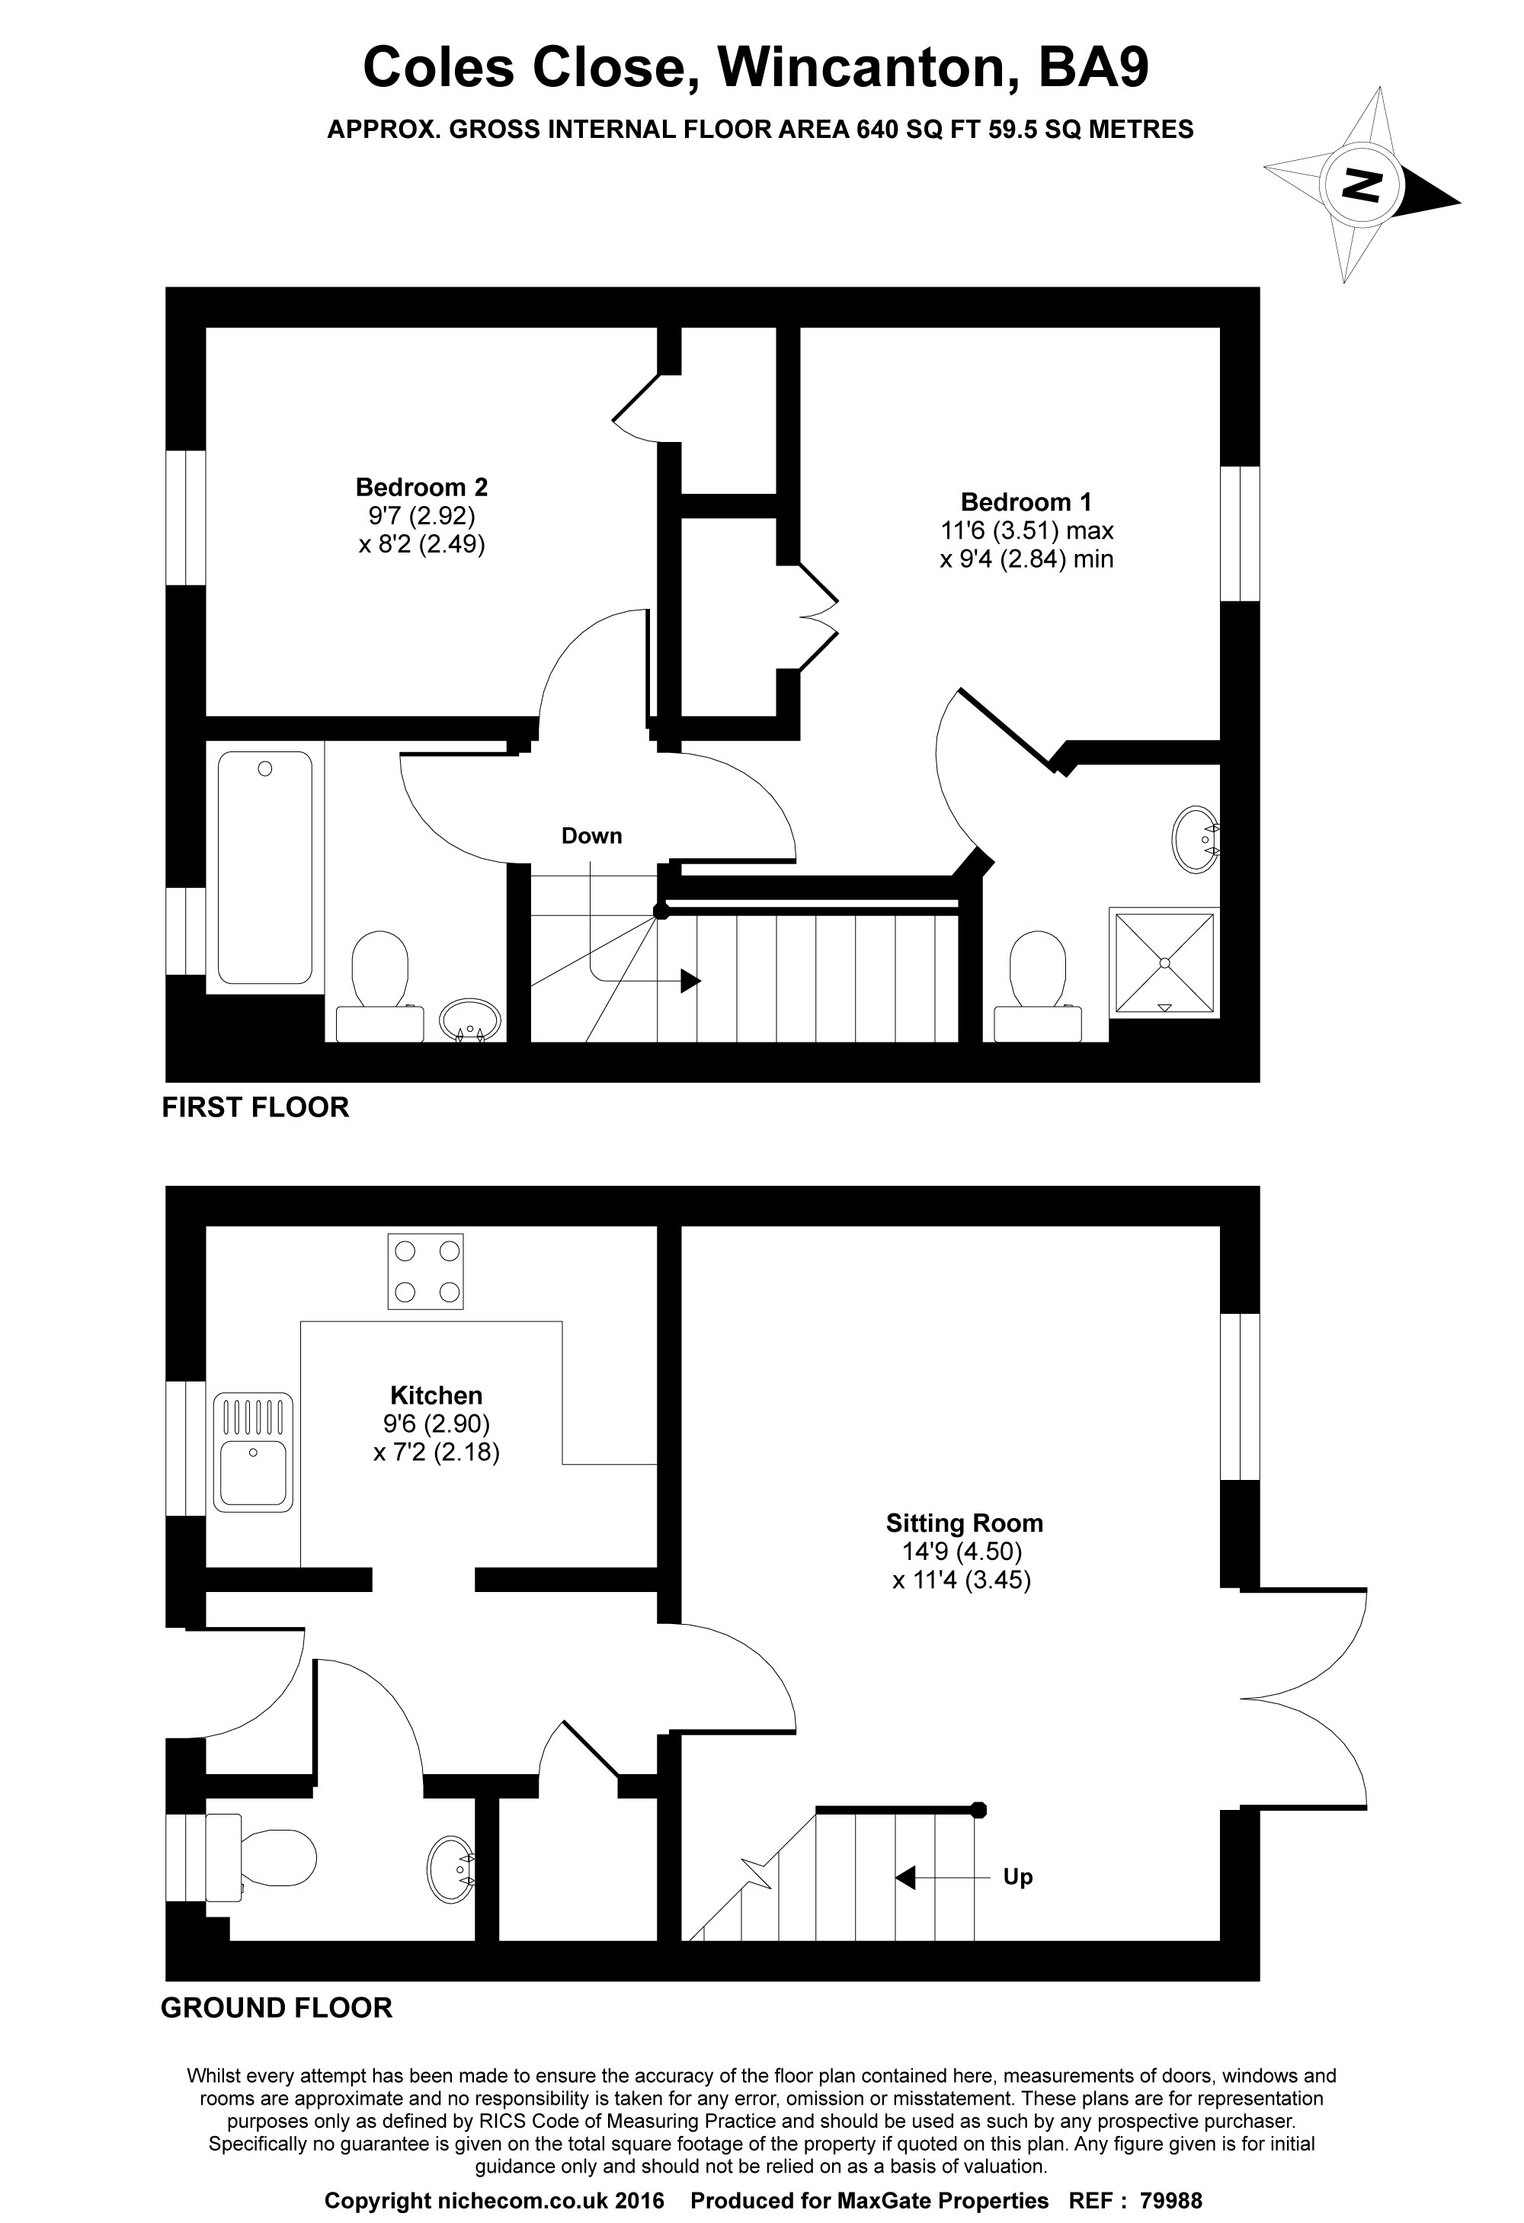 Floorplan for 24 Coles Close, Wincanton